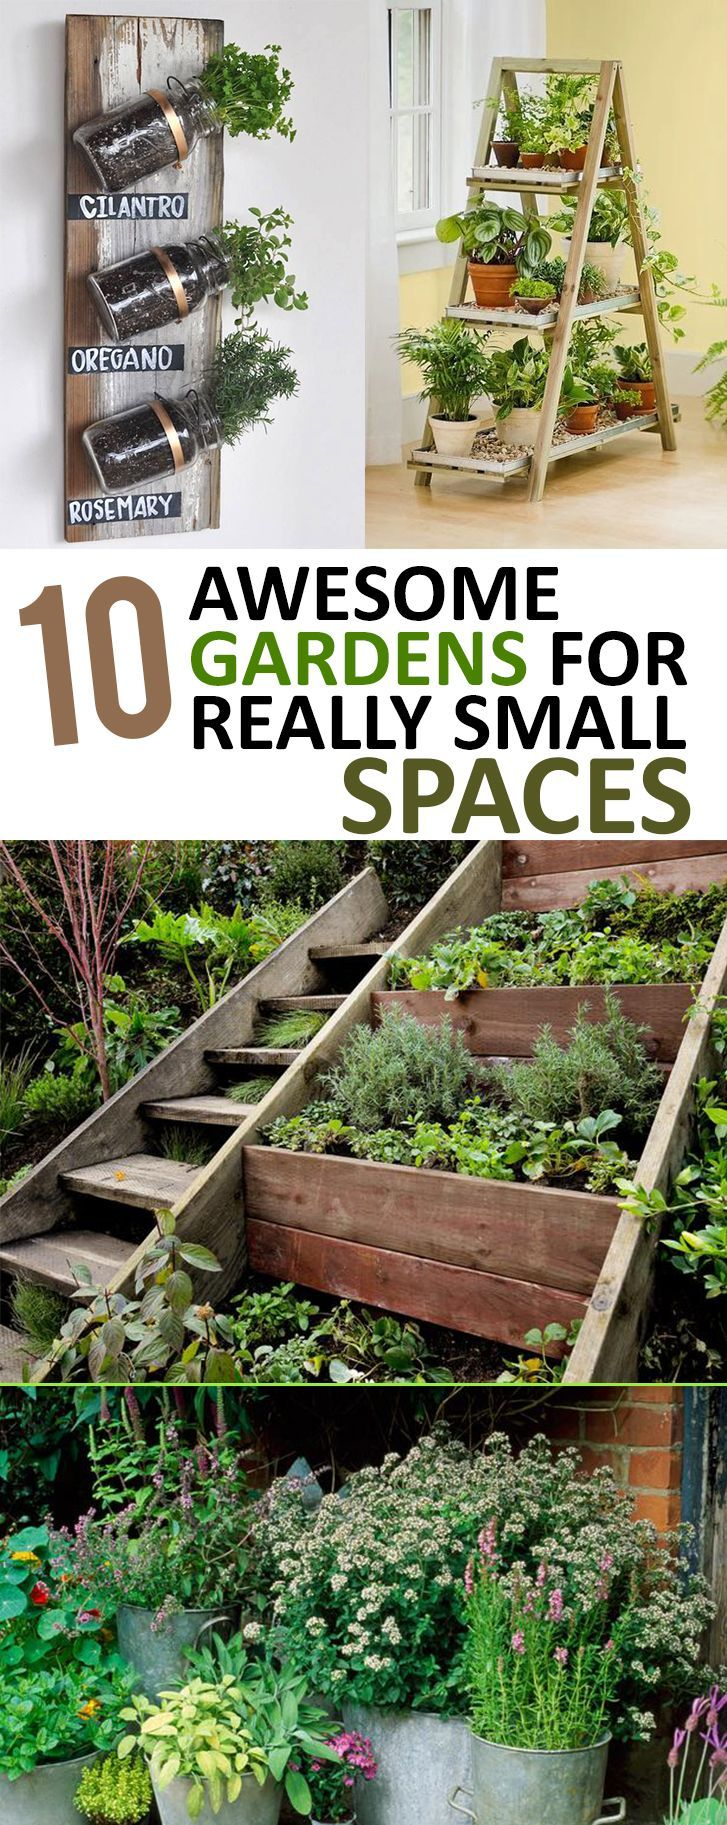 10 Awesome Gardens for Really Small Spaces | Small space ...